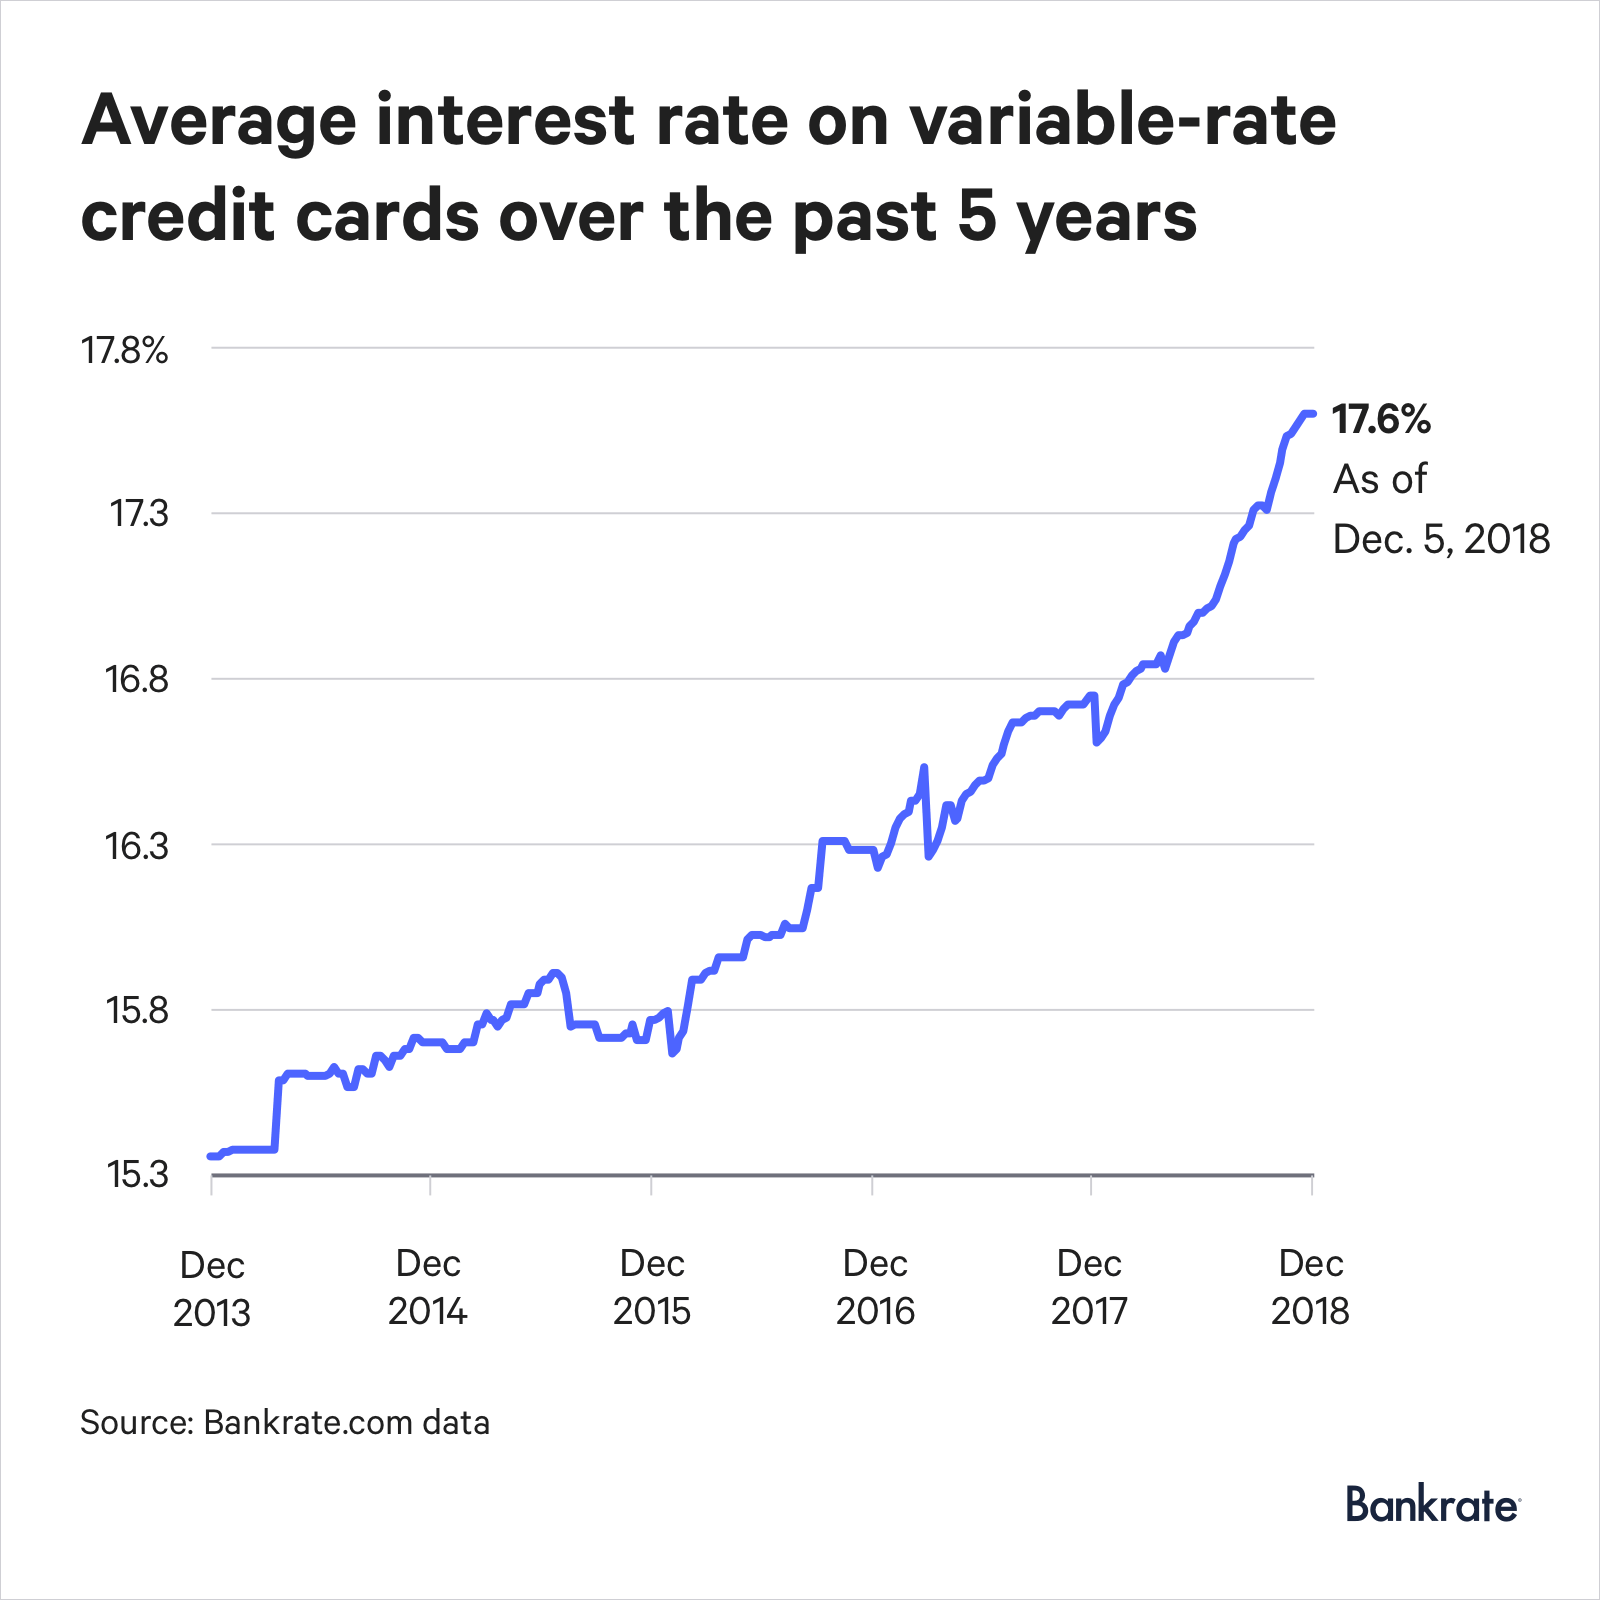 As of Dec. 5, 2018, the average interest rate on a variable-rate credit card is 17.6%.